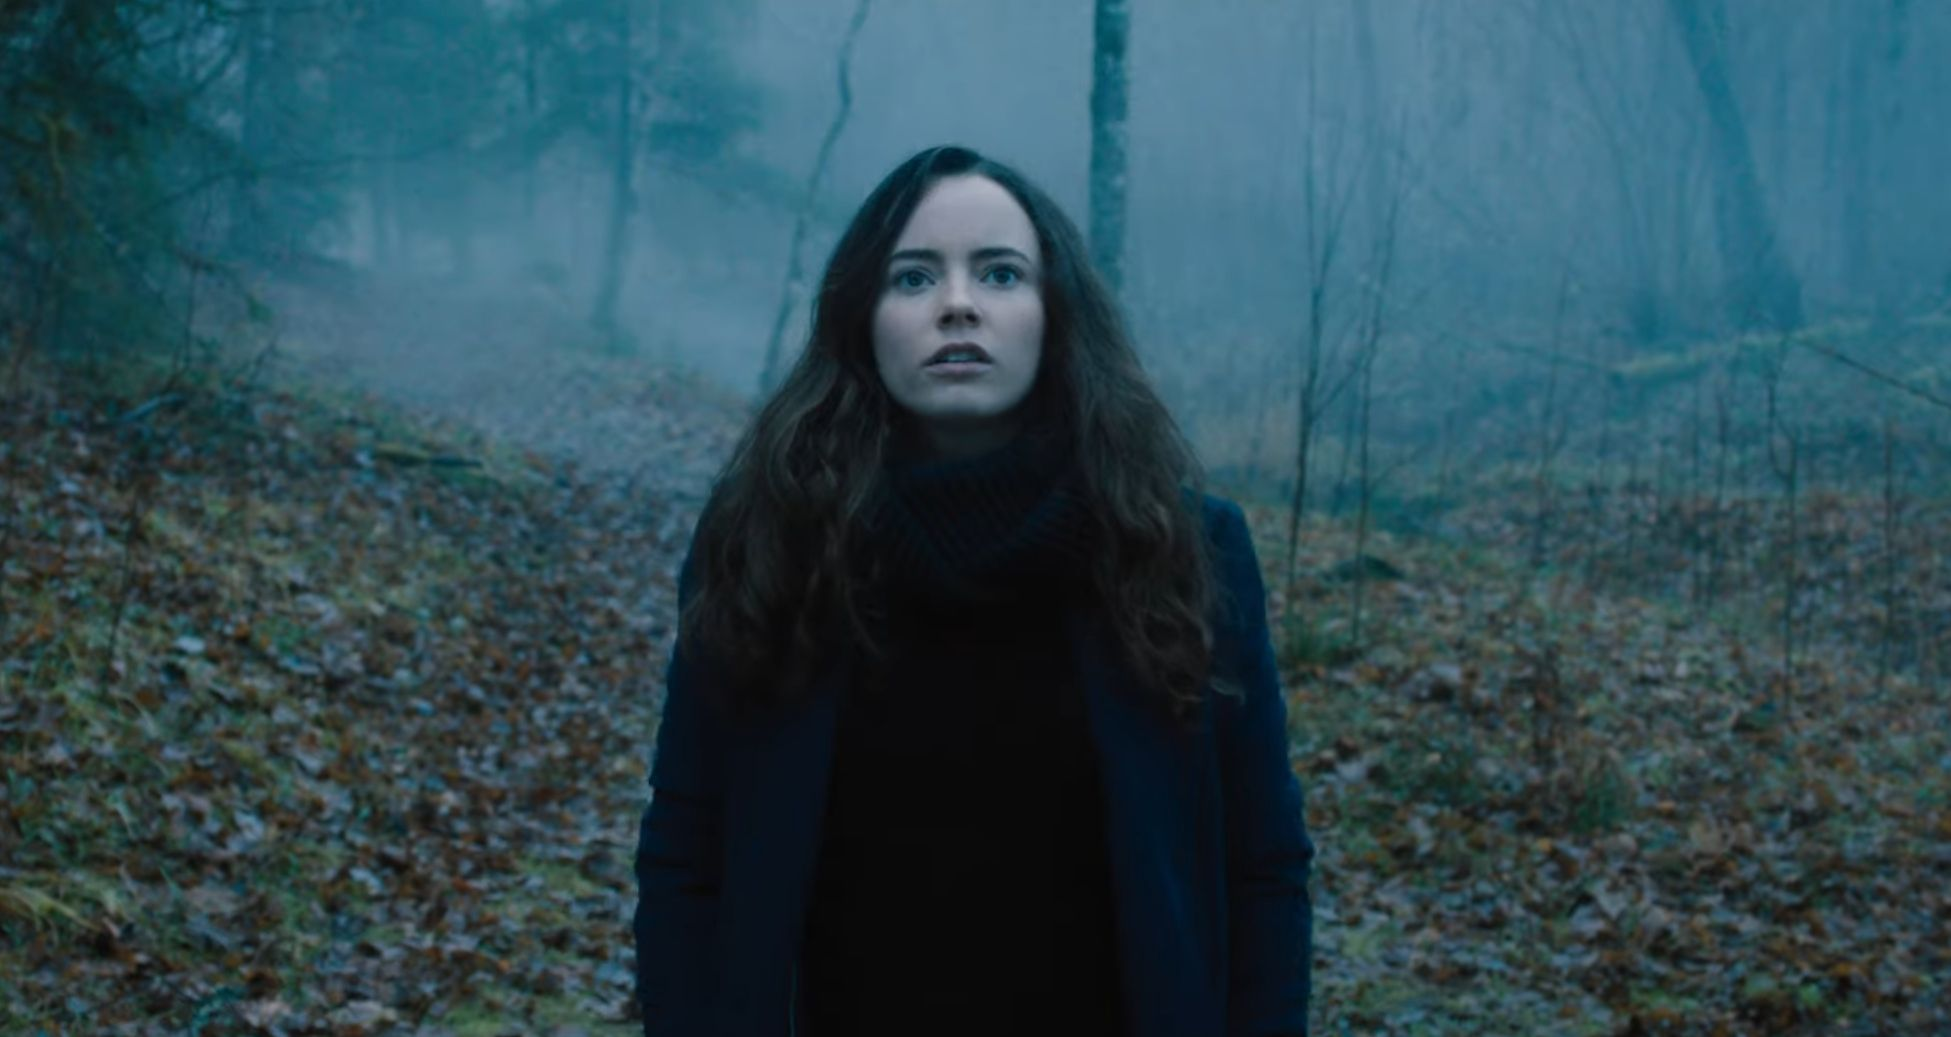 The Sonata Trailer Looks To Conjure The Antichrist With A